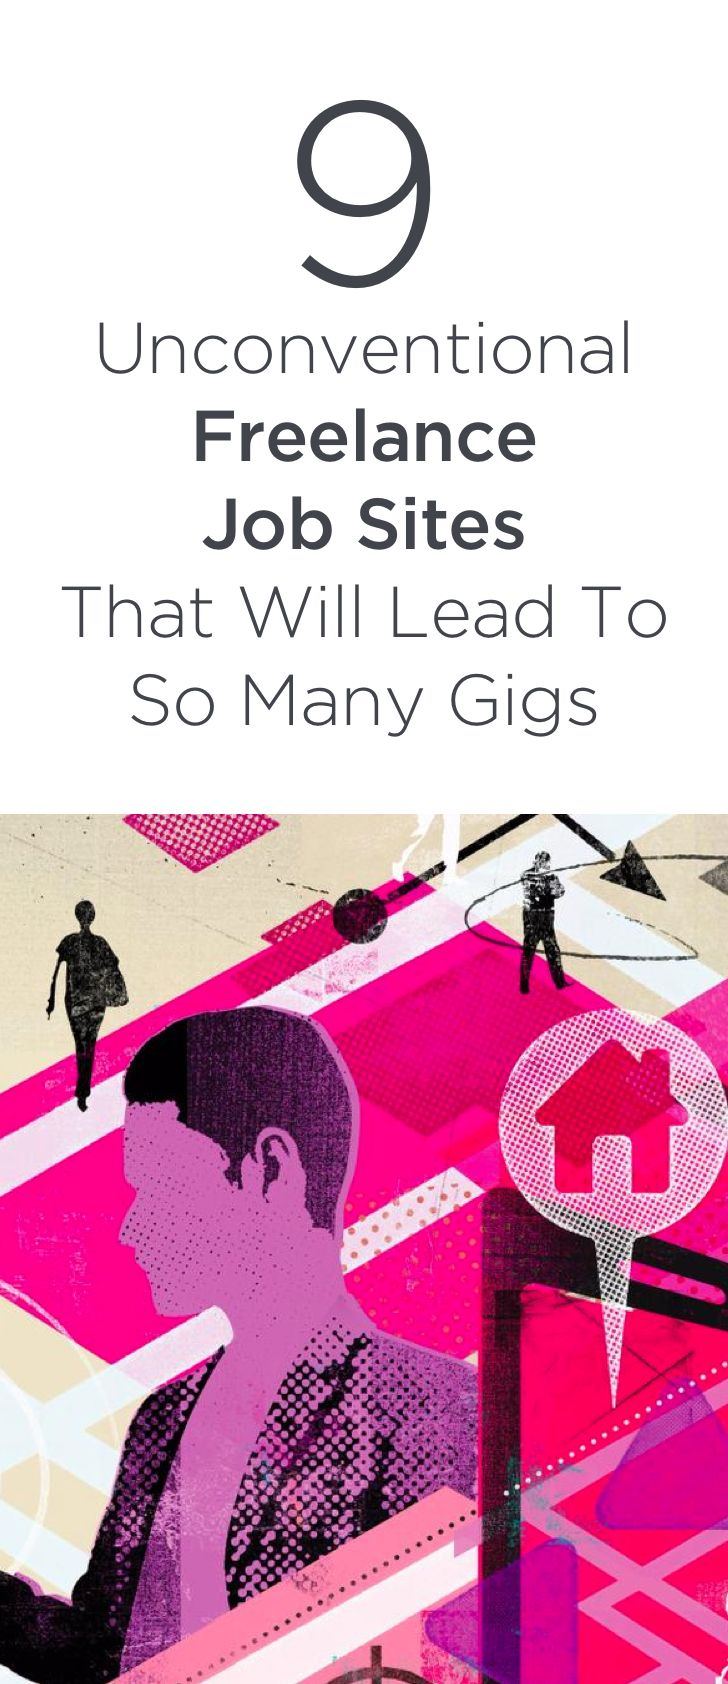 Freelance Graphic Design Job Leads: 9 Unconventional Freelance Job Sites That Will Lead To So Many Gigs rh:pinterest.com,Design